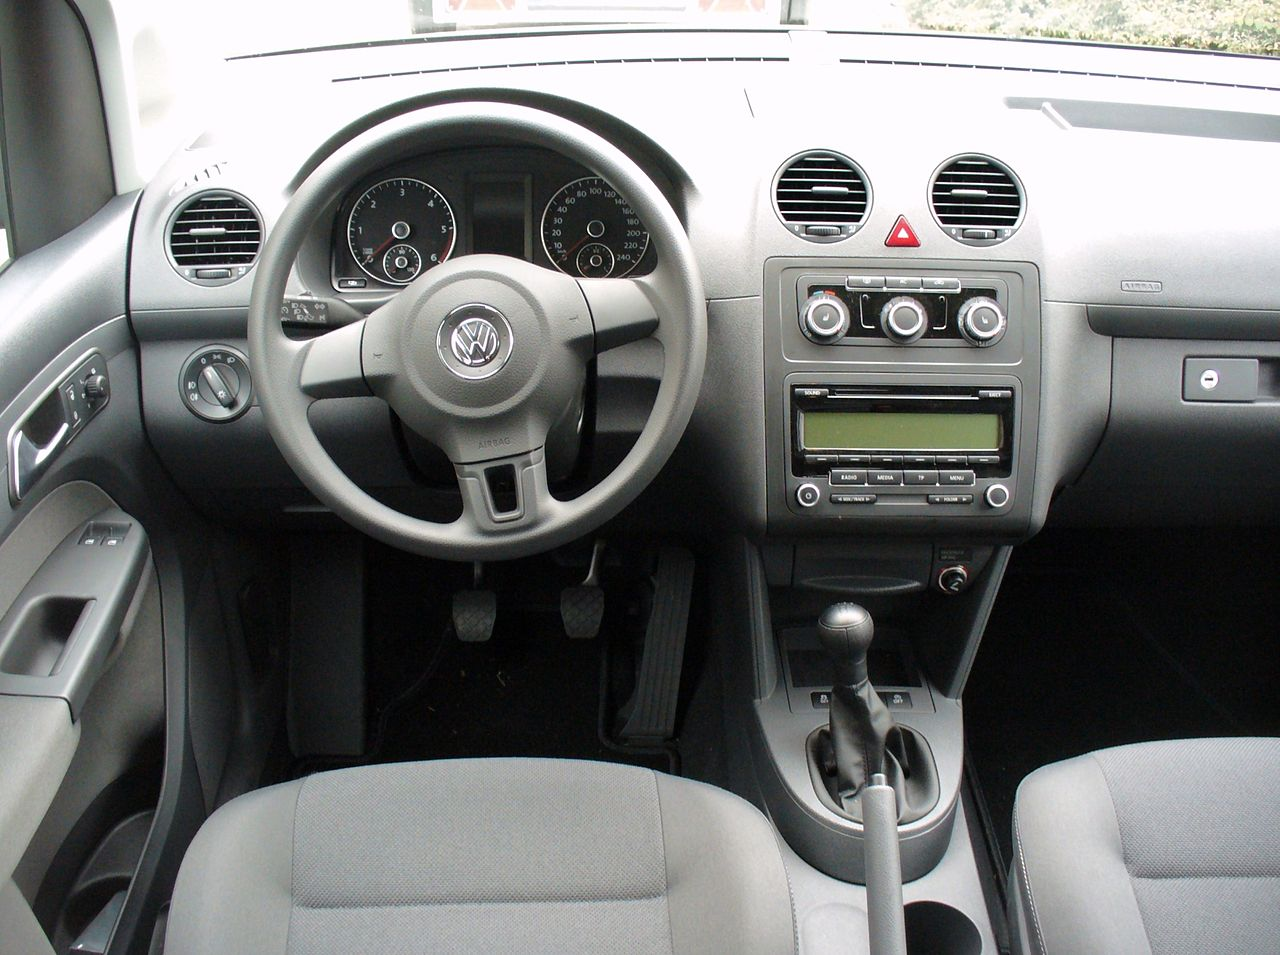 file vw caddy facelift 1 6 tdi bluemotion interieur jpg wikimedia commons. Black Bedroom Furniture Sets. Home Design Ideas